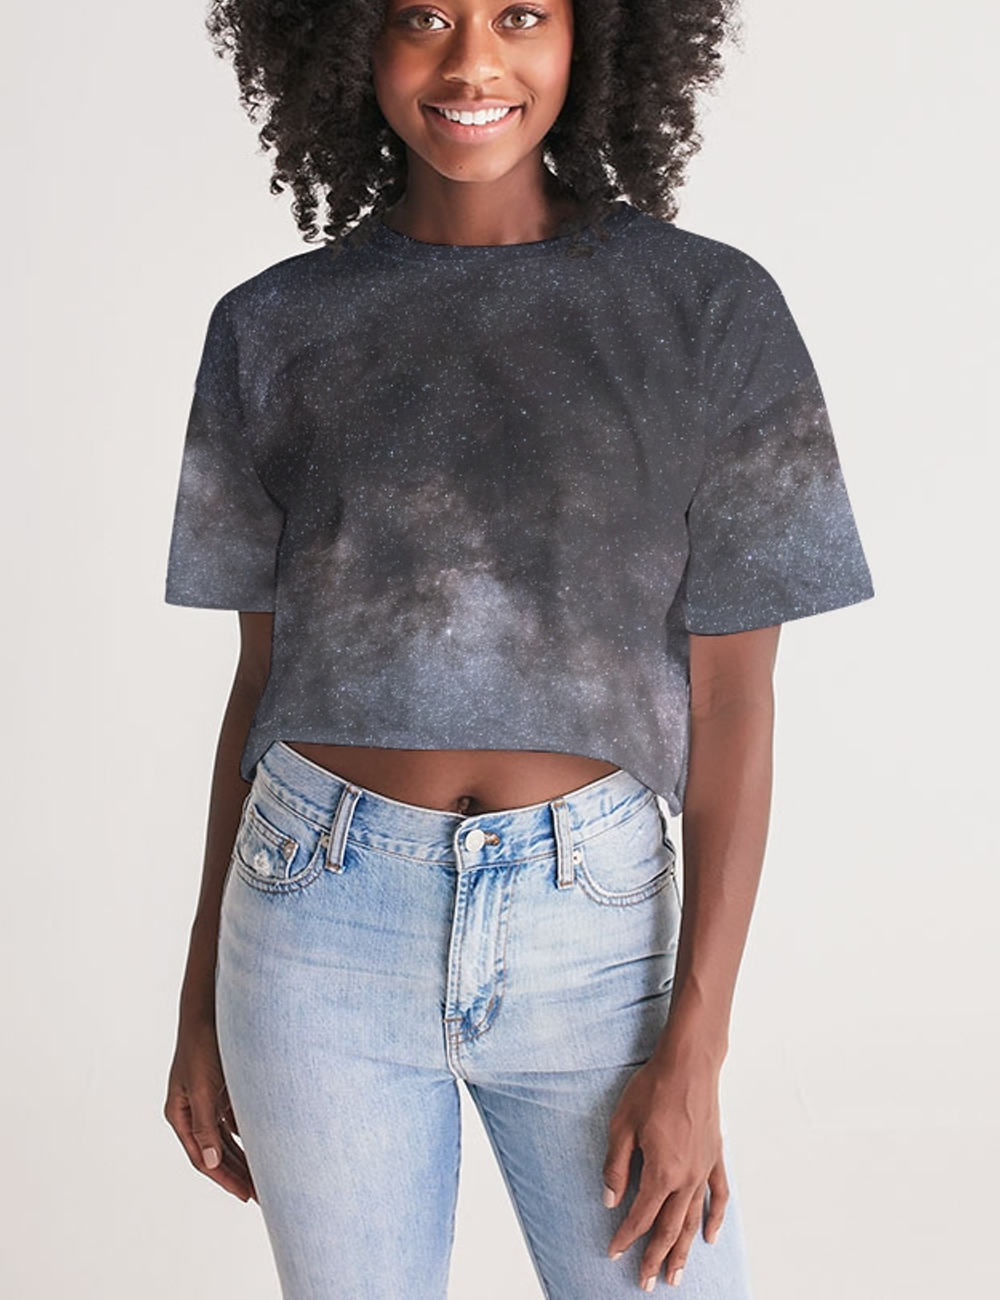 The Great Constellation | Women's Sublimated Crop Top T-Shirt